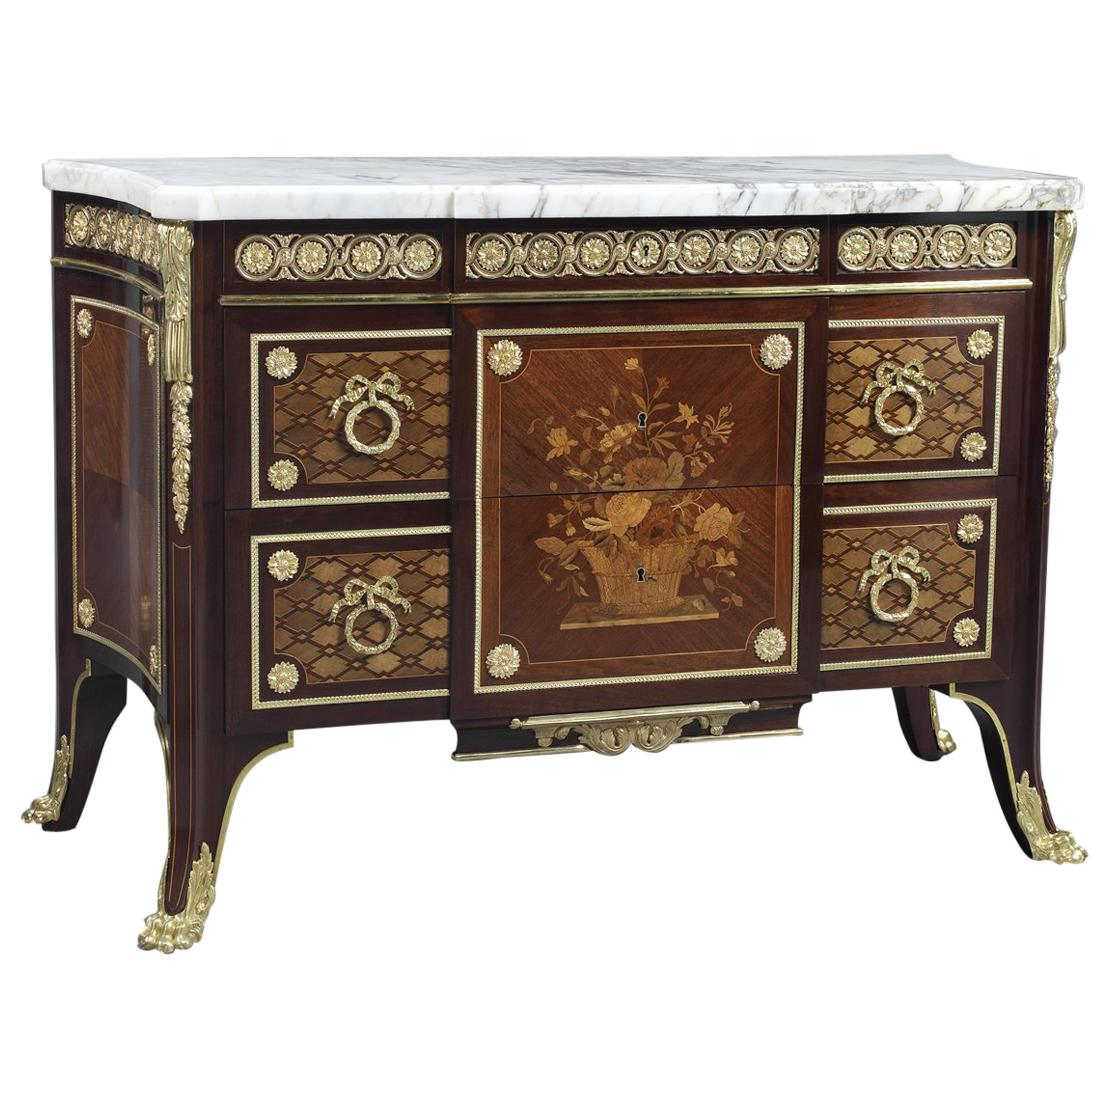 Louis XVI Style Neoclassical Commode in the Manner of Riesener, circa 1890